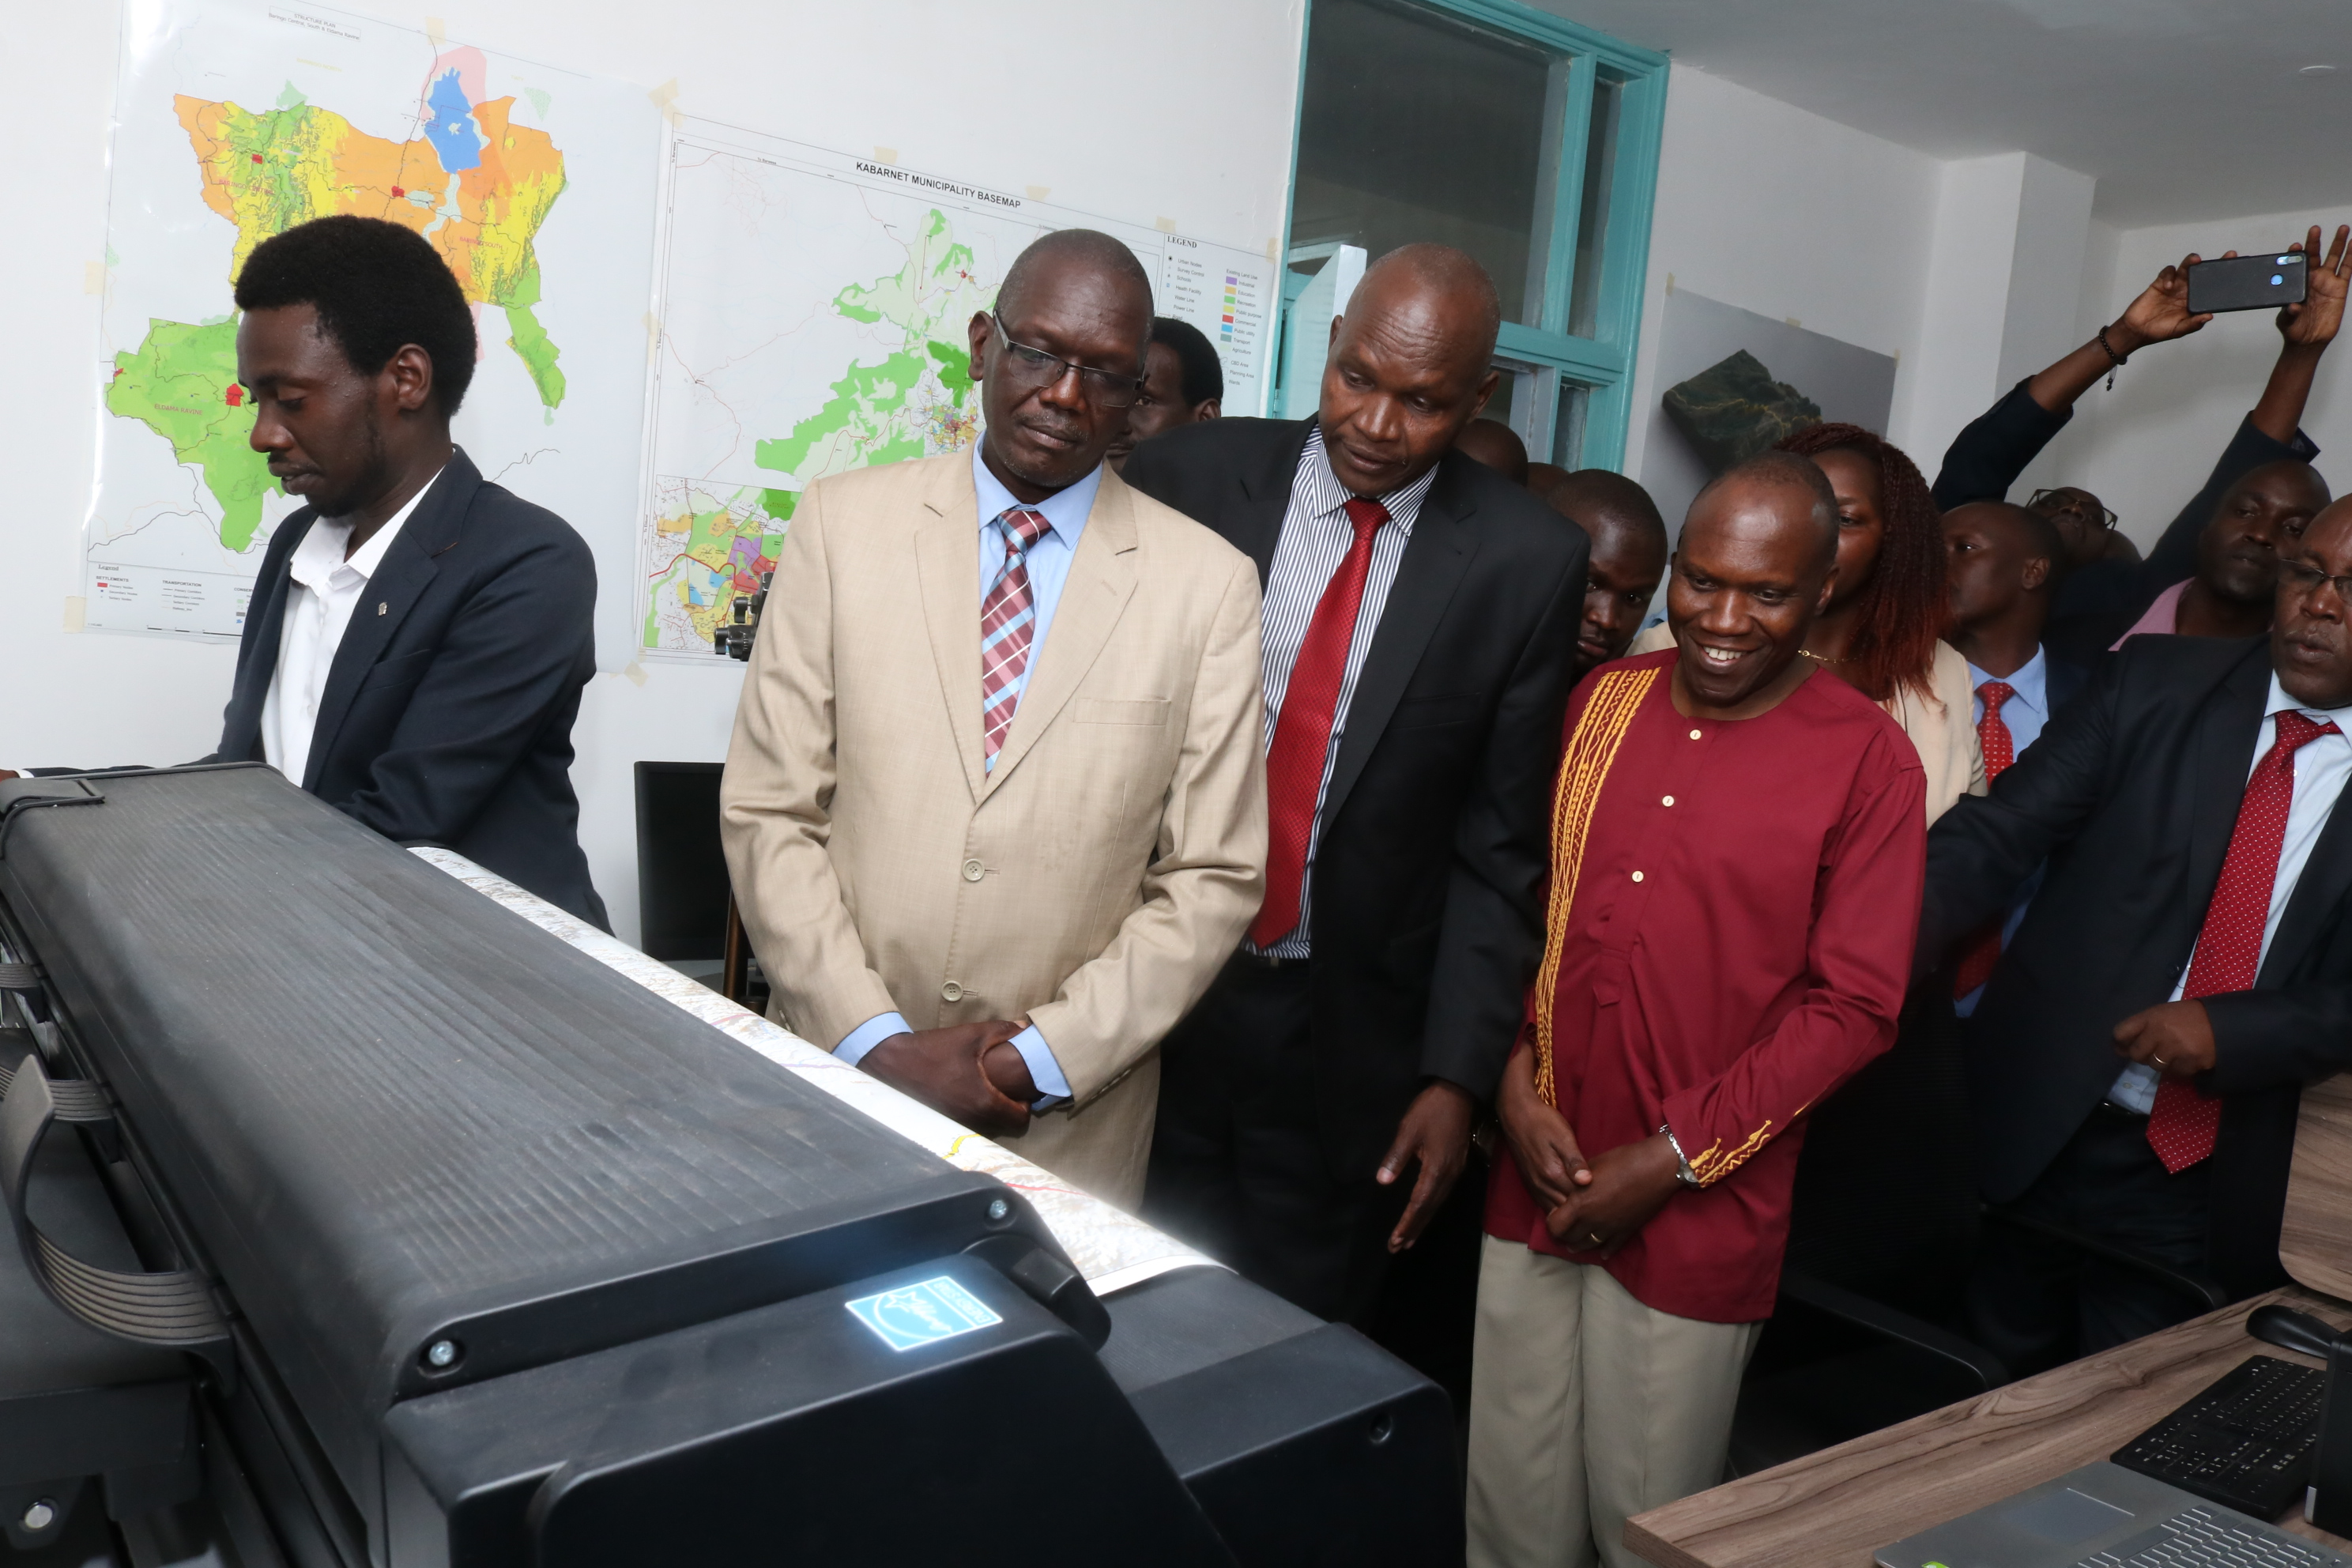 Launching of Baringo County Geographical Information System (GIS)Lab